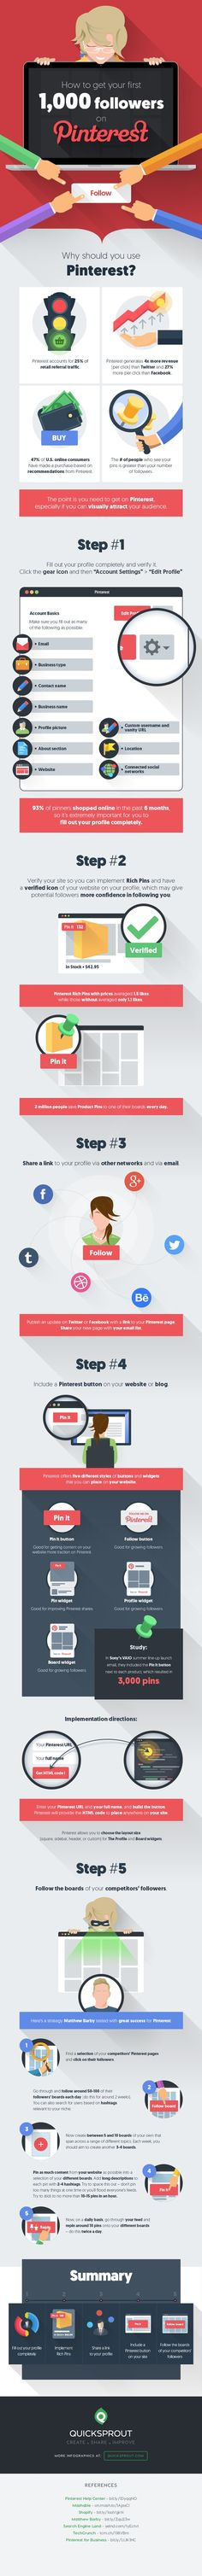 How to Get Your First 1,000 Followers on Pinterest . .!! Pls Click this Link & 5 Step Follow #dwebguys